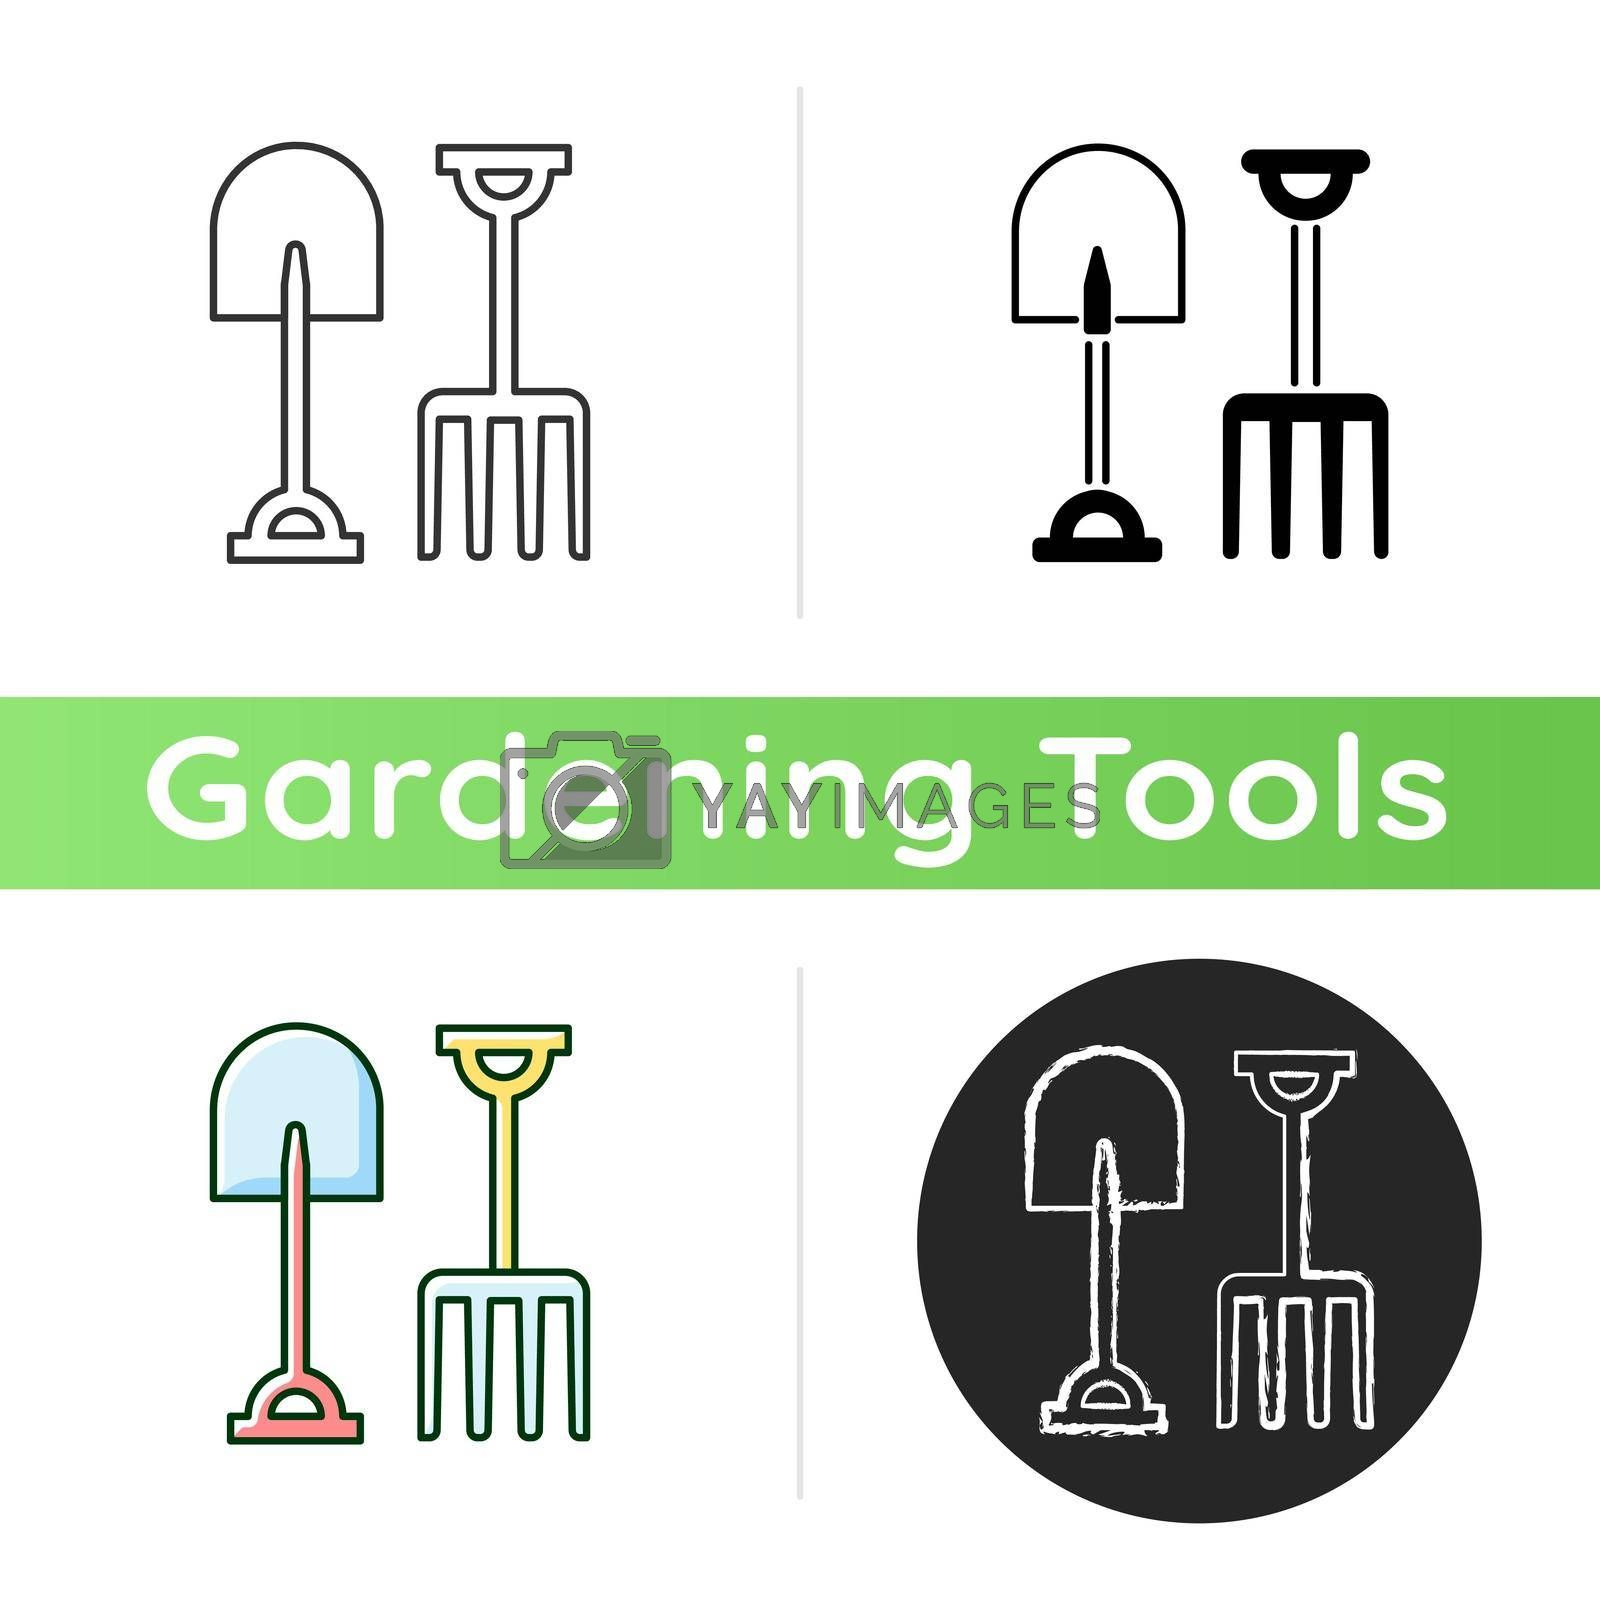 Garden fork and spade icon. Loosening, blending soil. Light cultivation. Moving bulk materials. Pitchfork. Digging trenches. Linear black and RGB color styles. Isolated vector illustrations